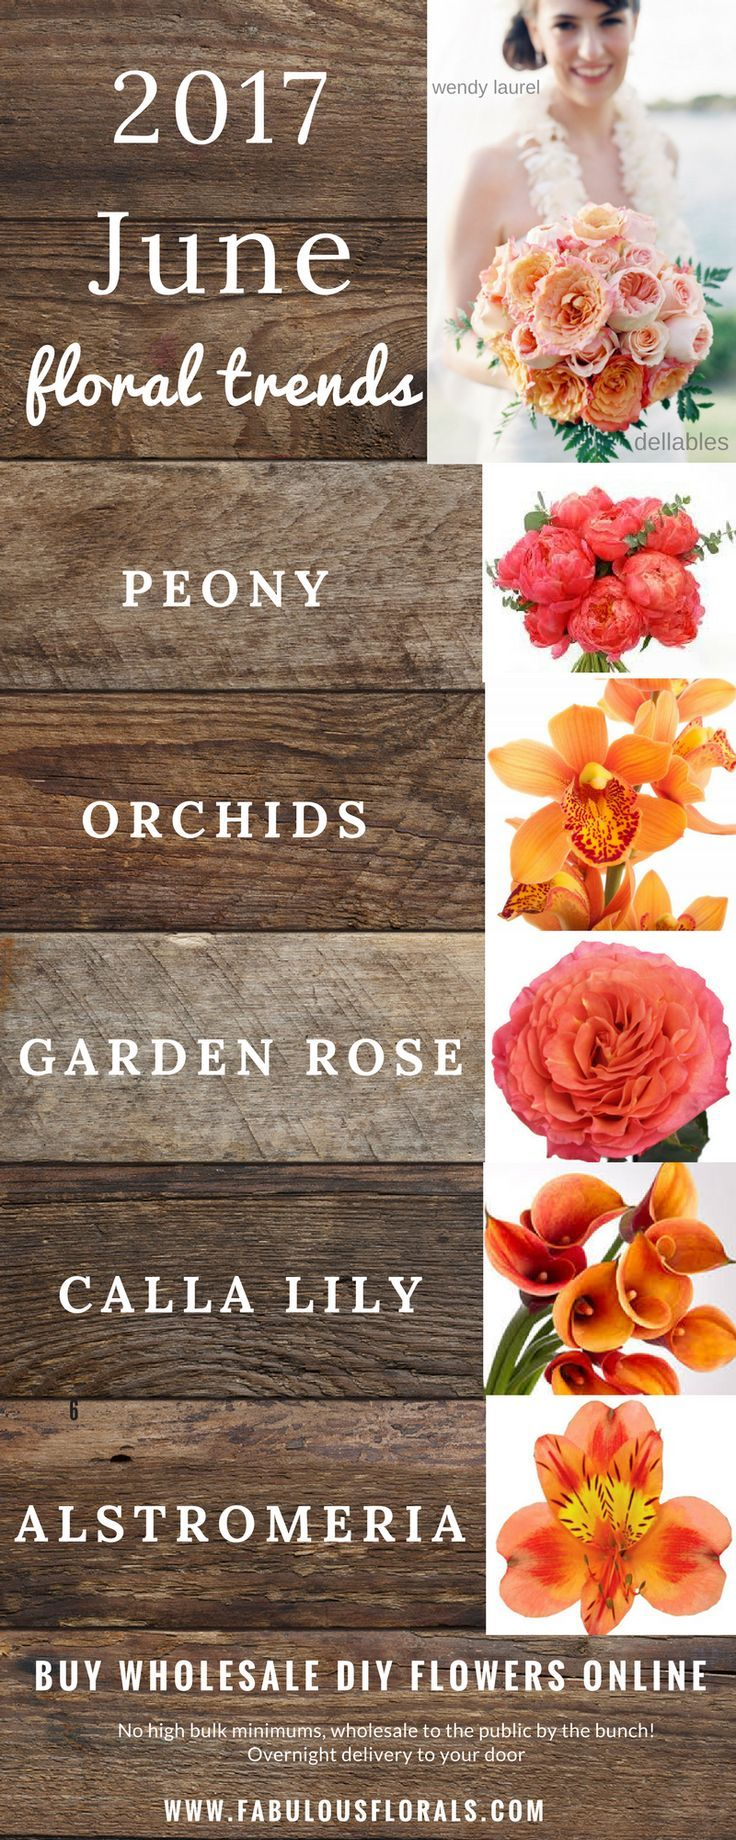 2017 flower trends! www.fabulousflorals.com The #1 source for wholesale DIY wedding flowers! #springflowers #diyflowers #diywedding #seasonalflowers #juneflowers